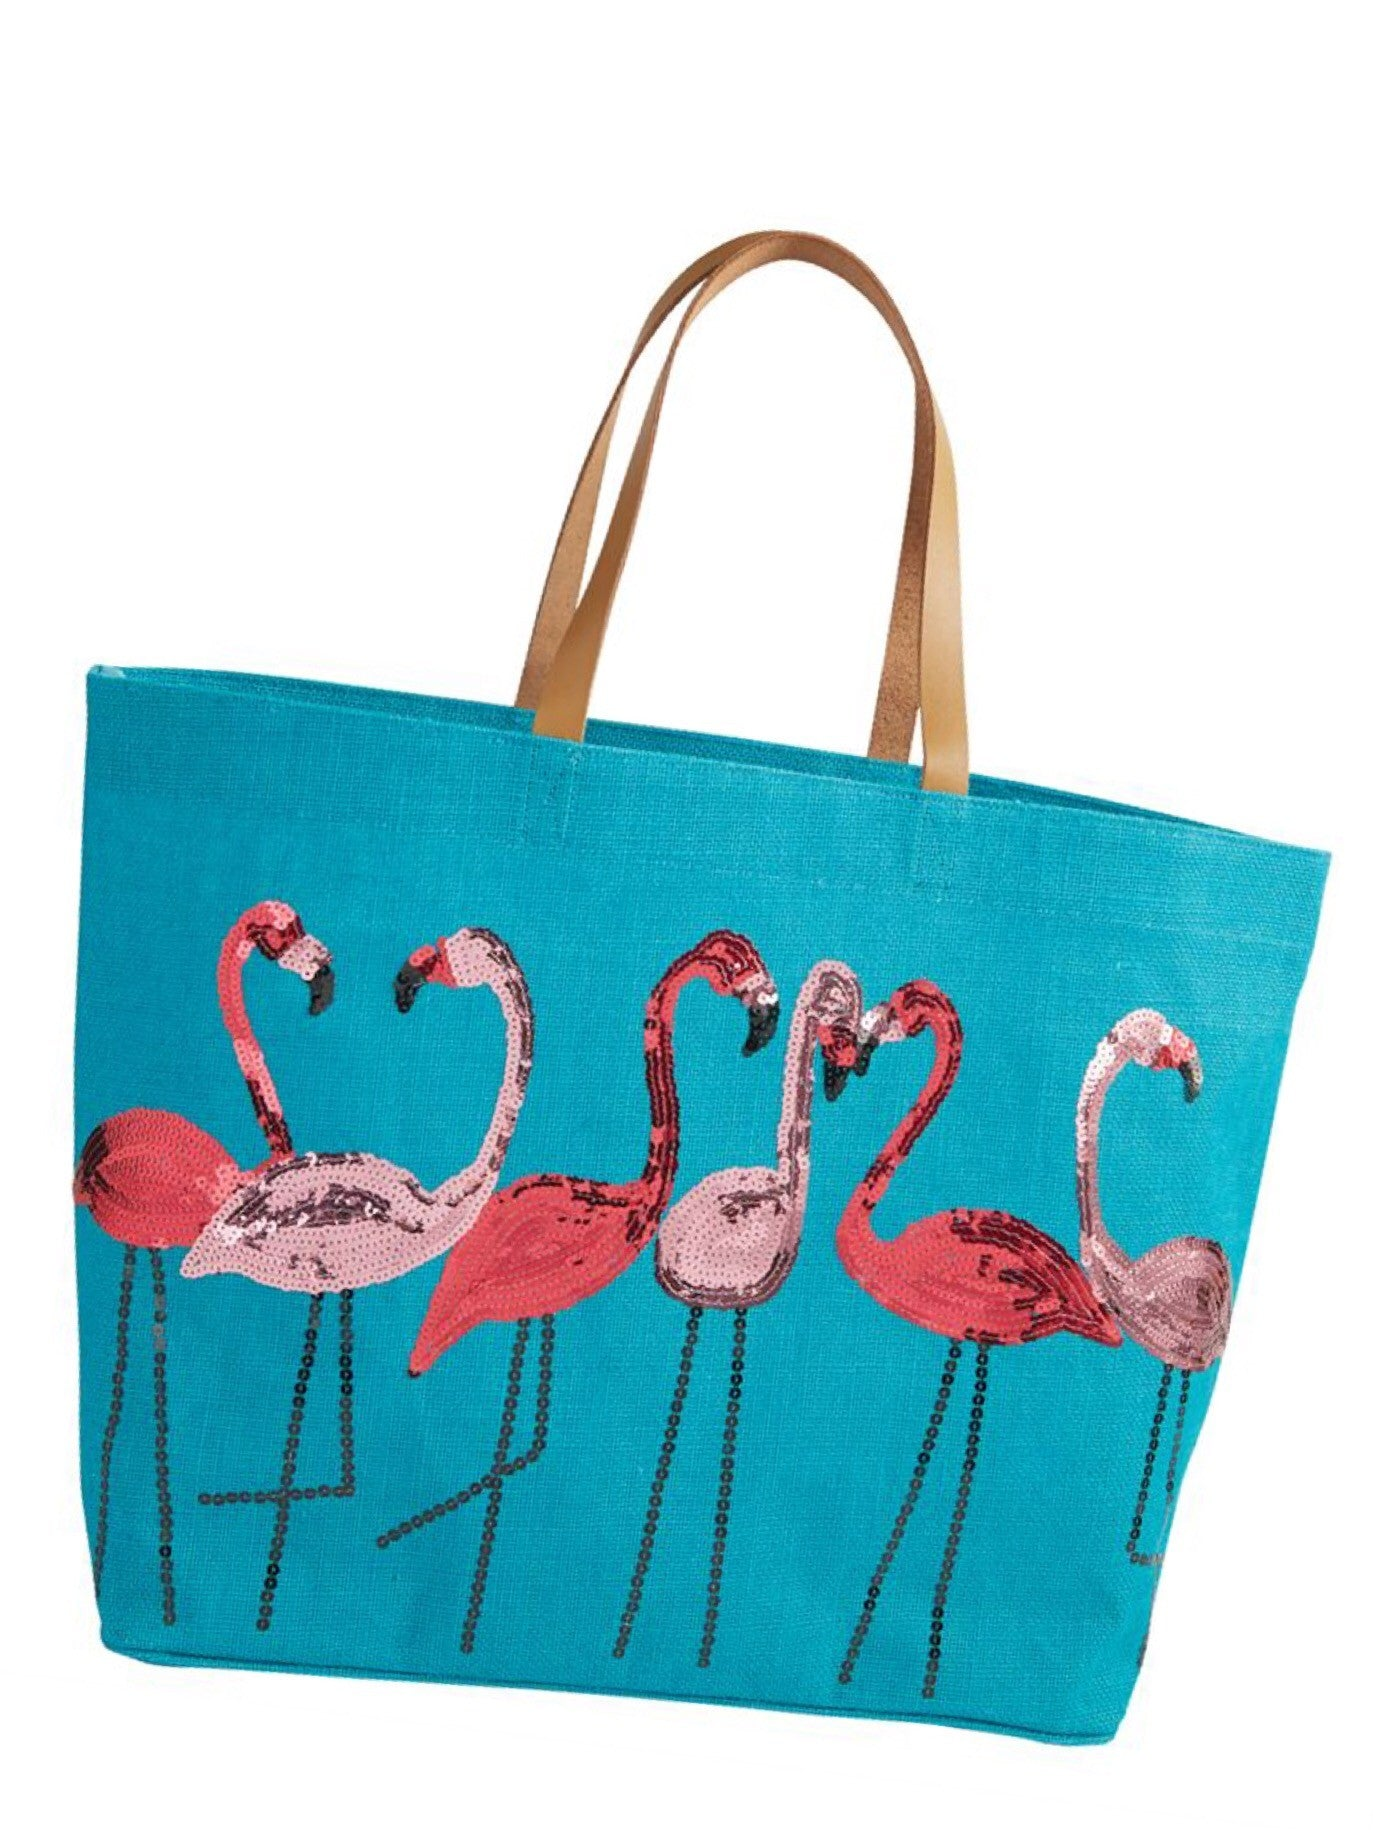 Flamingo Dazzle beach tote - Let's Beach